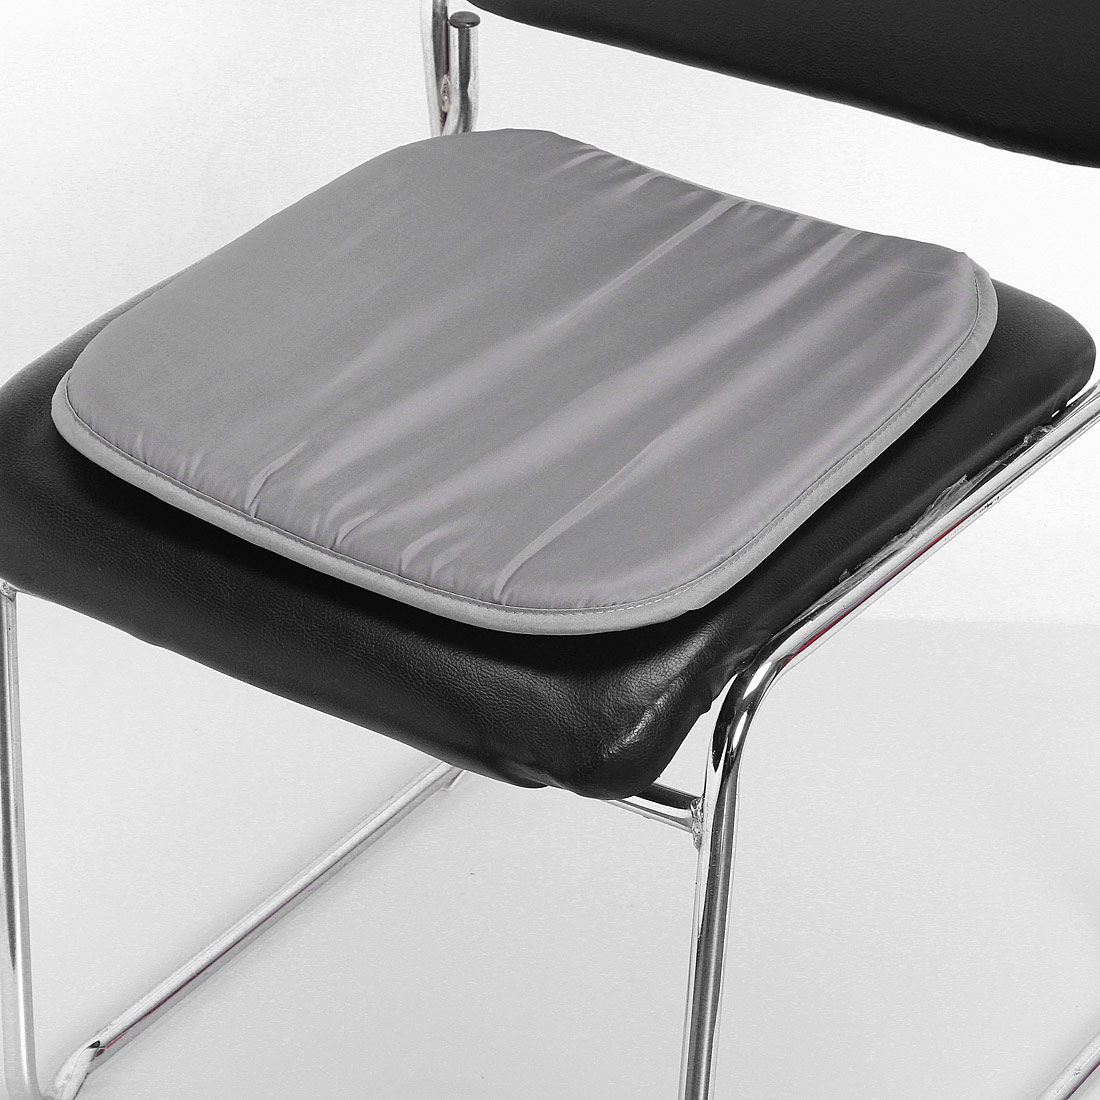 kitchen dining chair pads kohler single handle faucet home garden office seat cushion